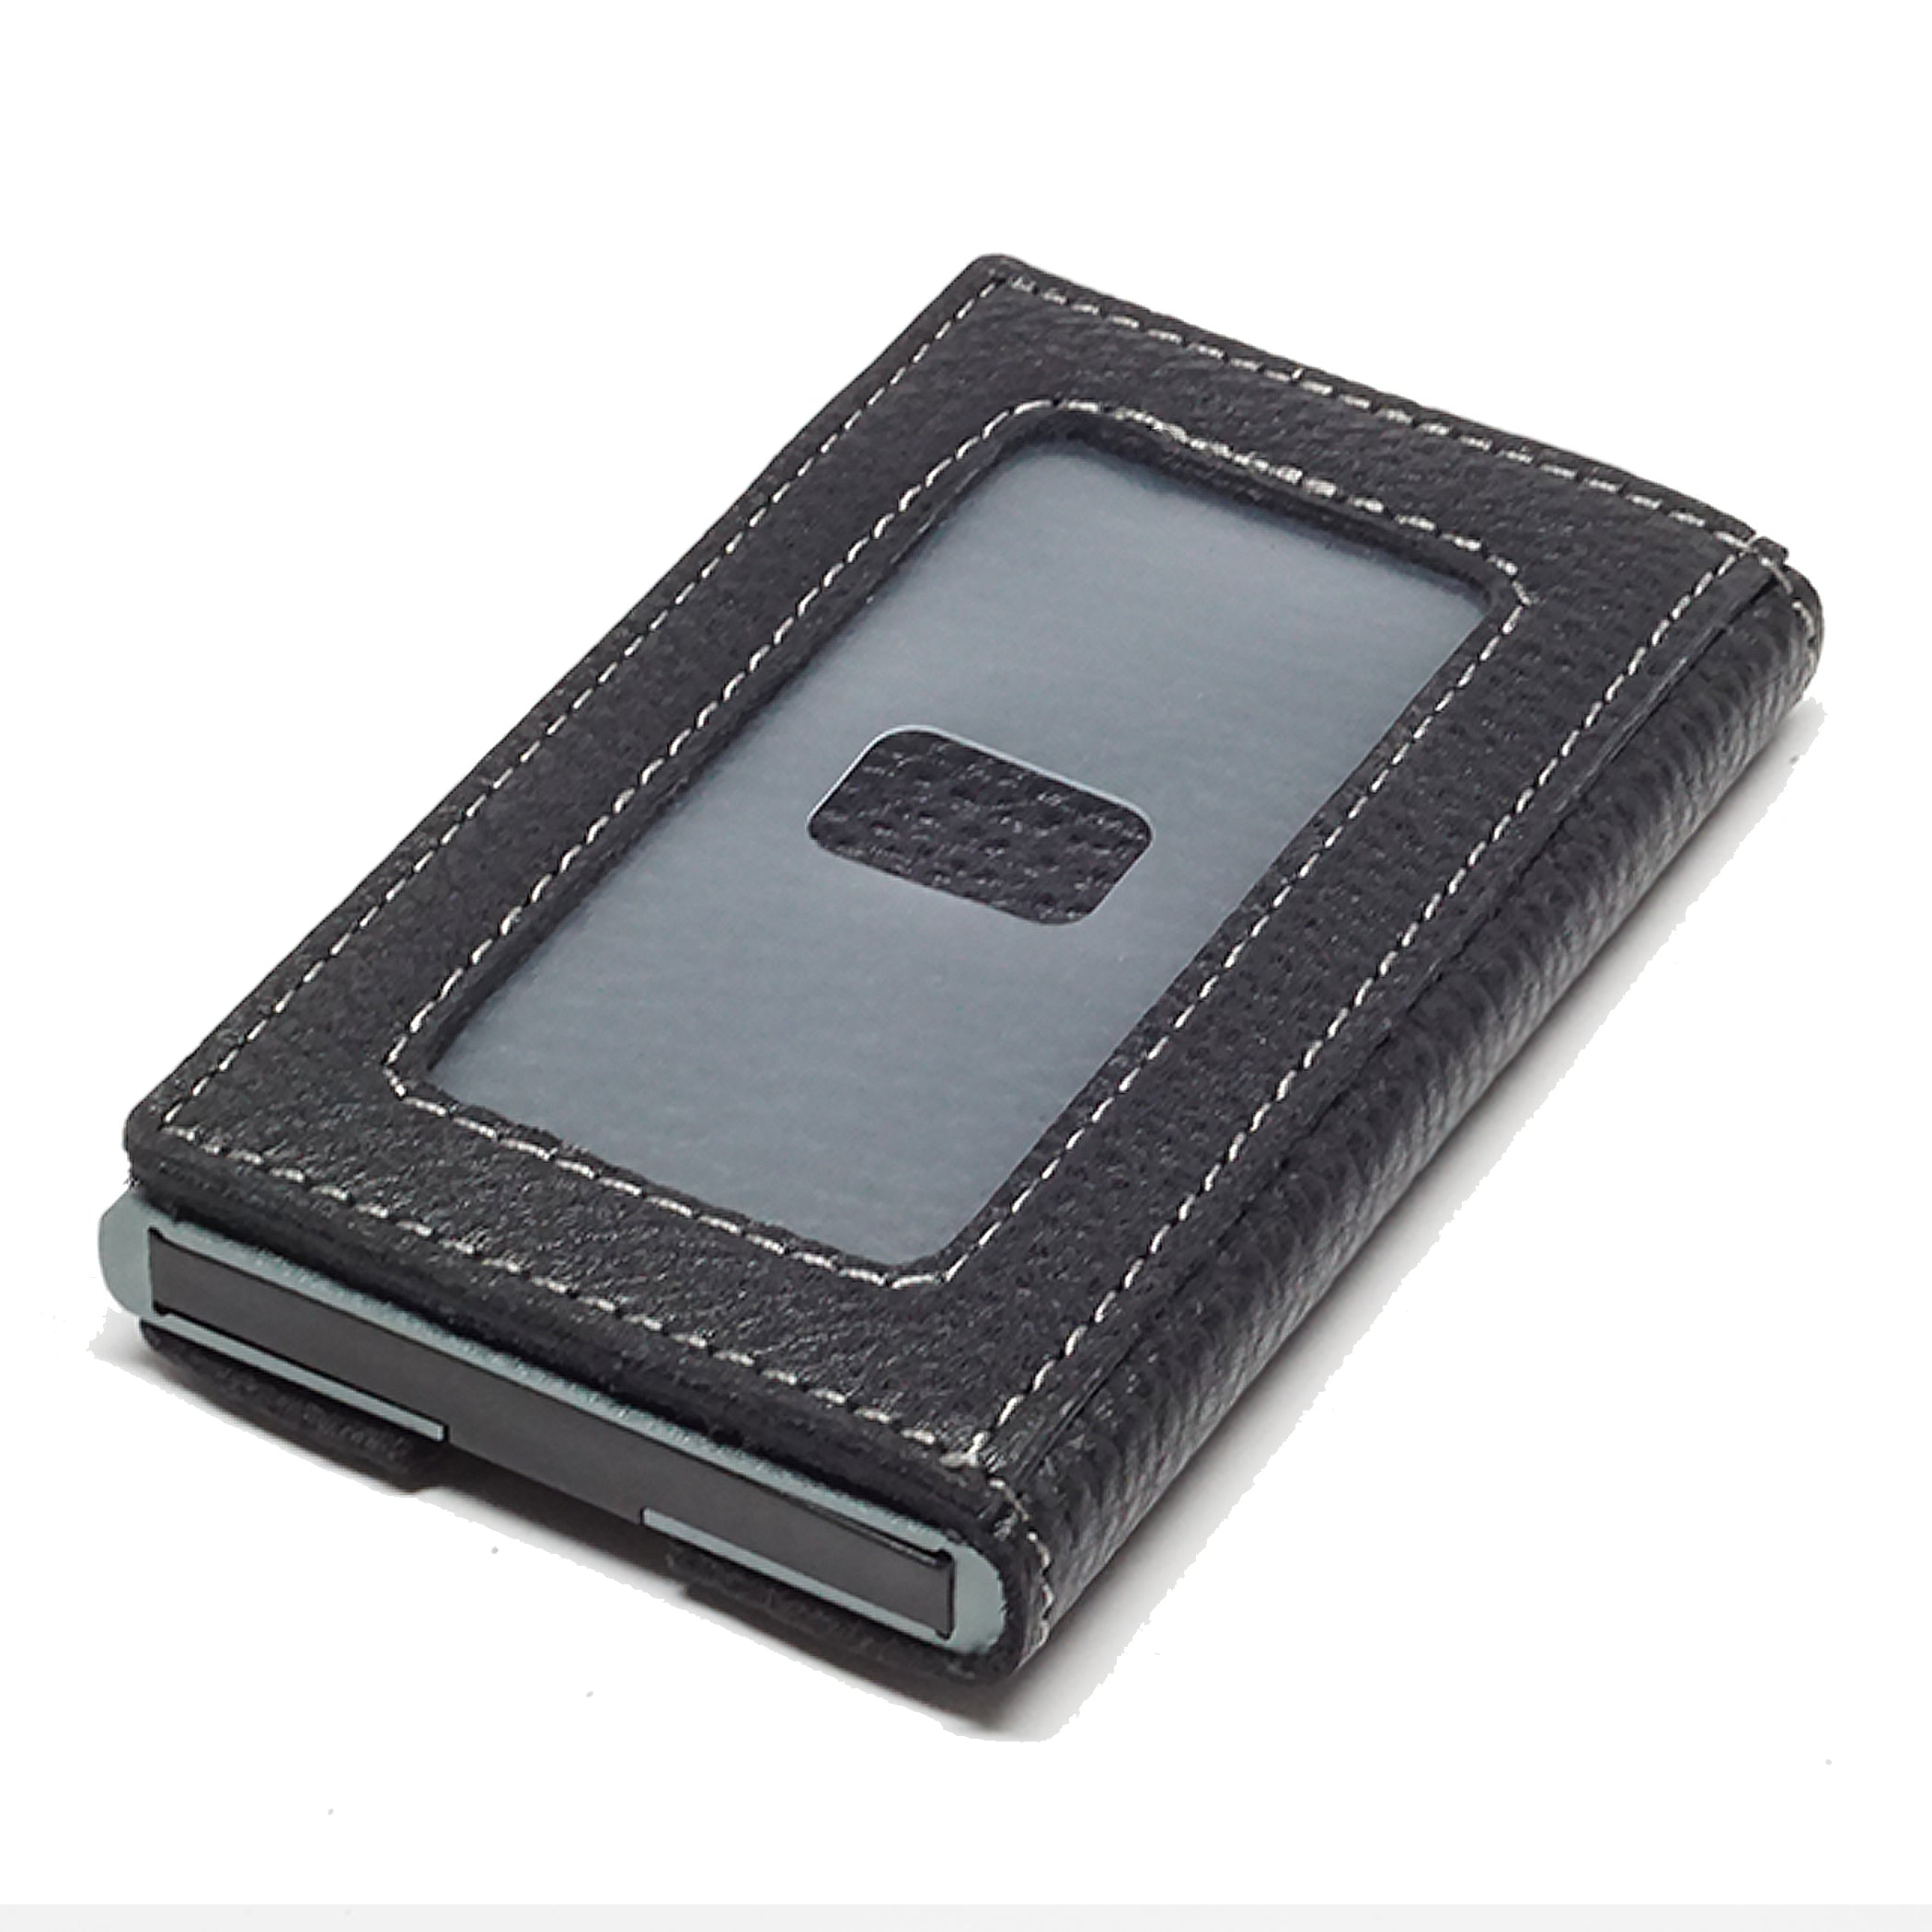 Card Blocr Credit Card Holder in Titanium Color Wrapped in Black Leather | RFID Wallet Backside